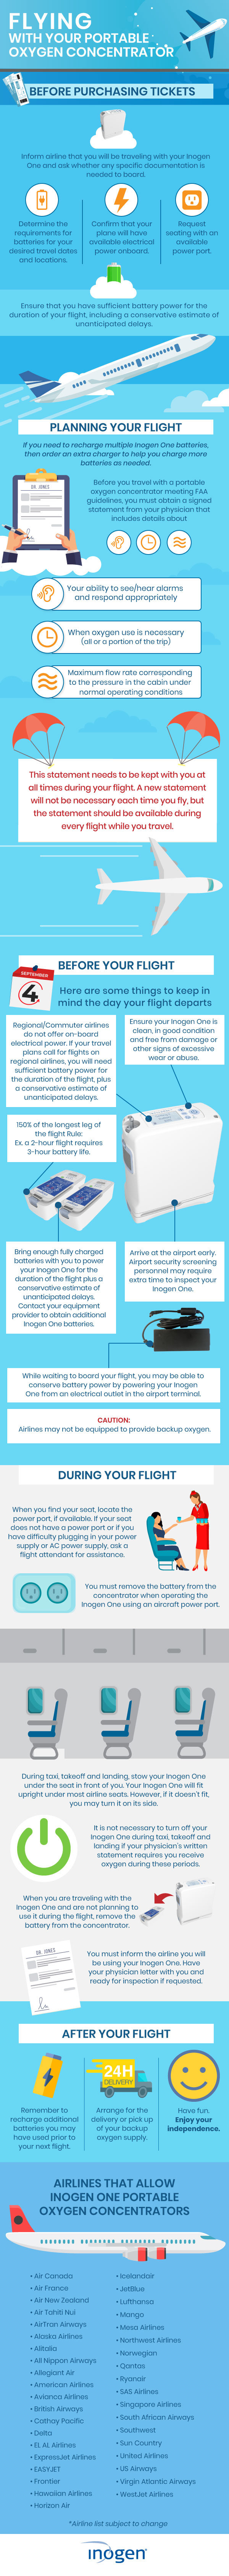 flying with portable oxygen